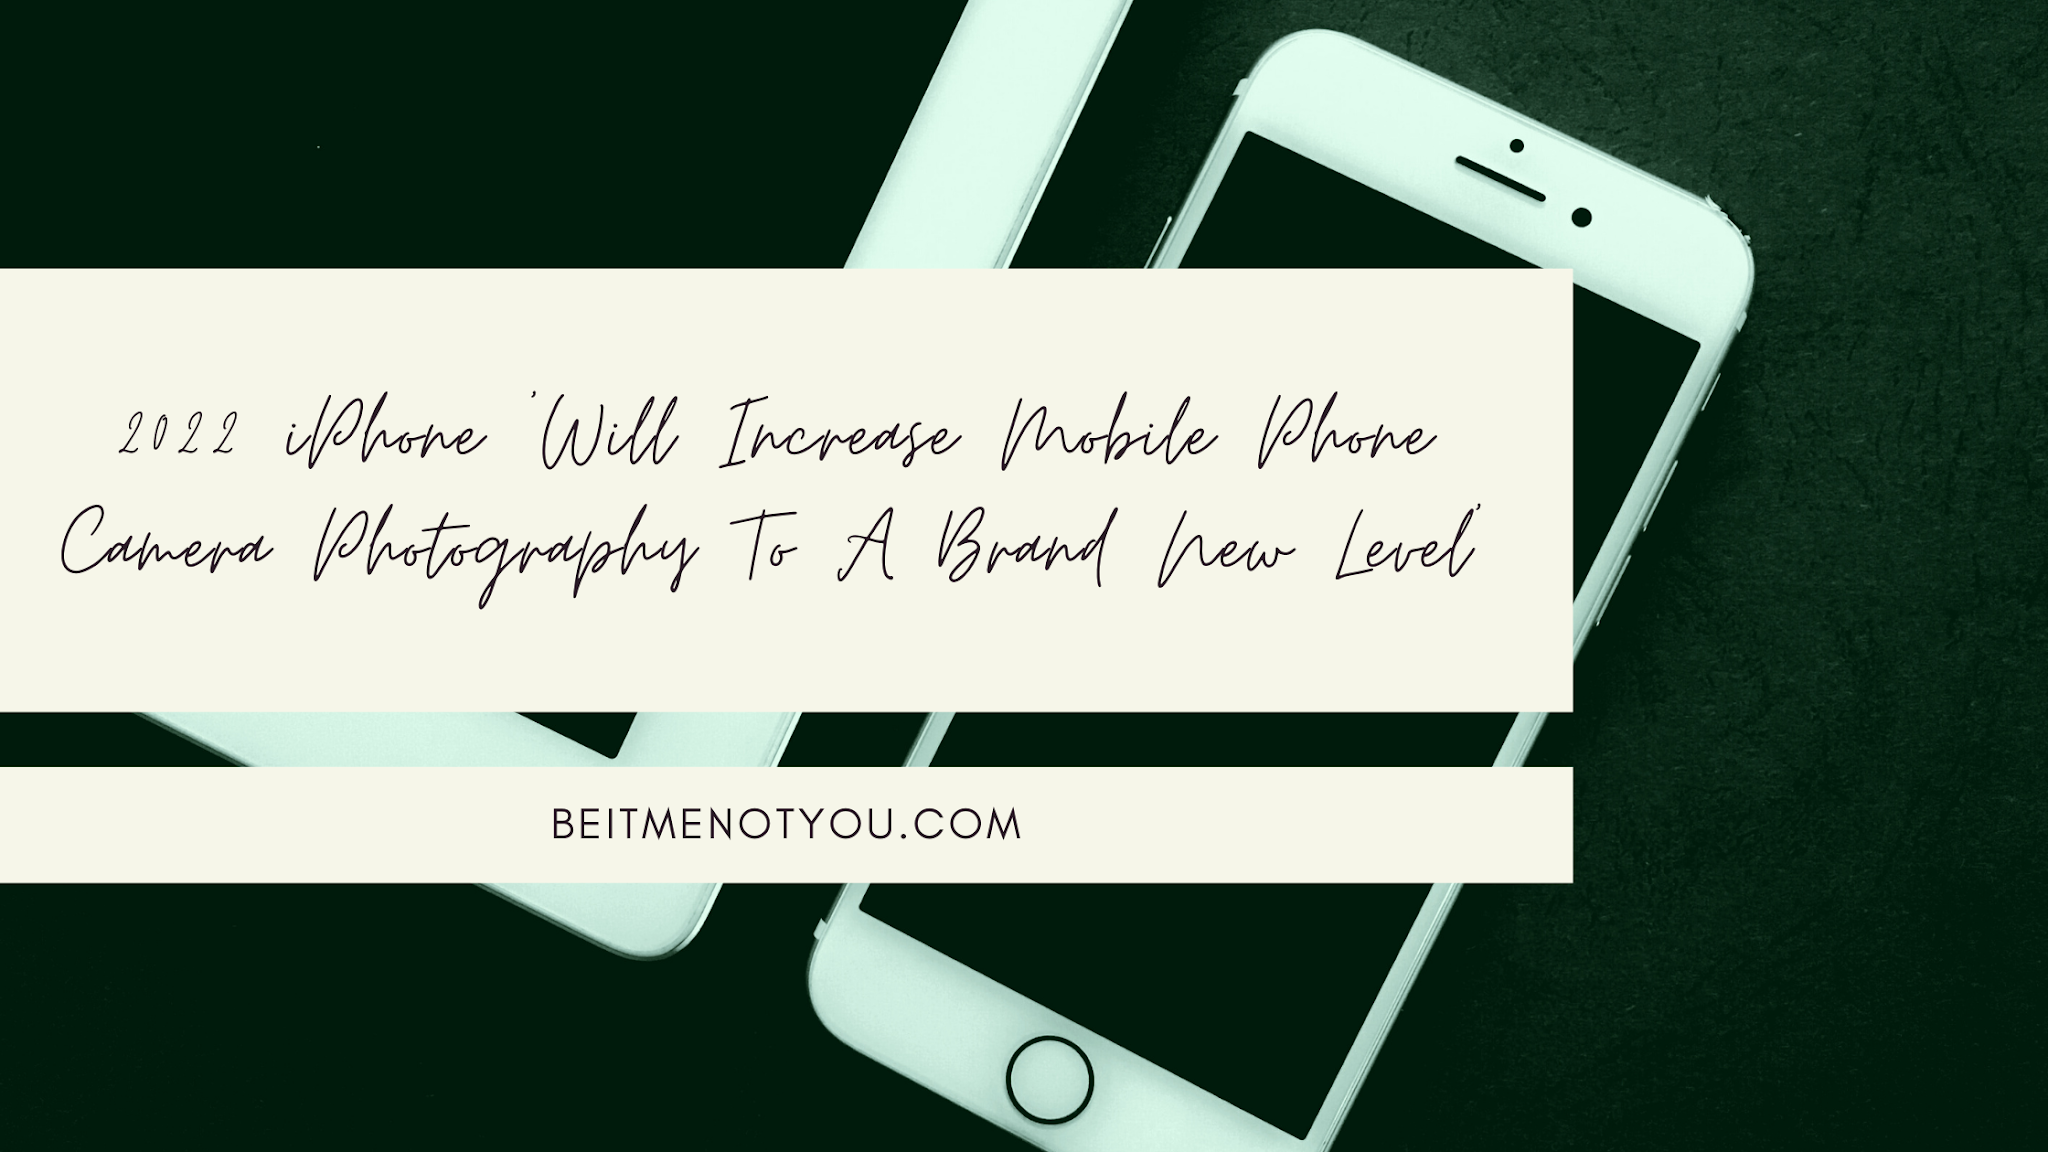 2022 iPhone 'Will Increase Mobile Phone Camera Photography To A Brand New Level'